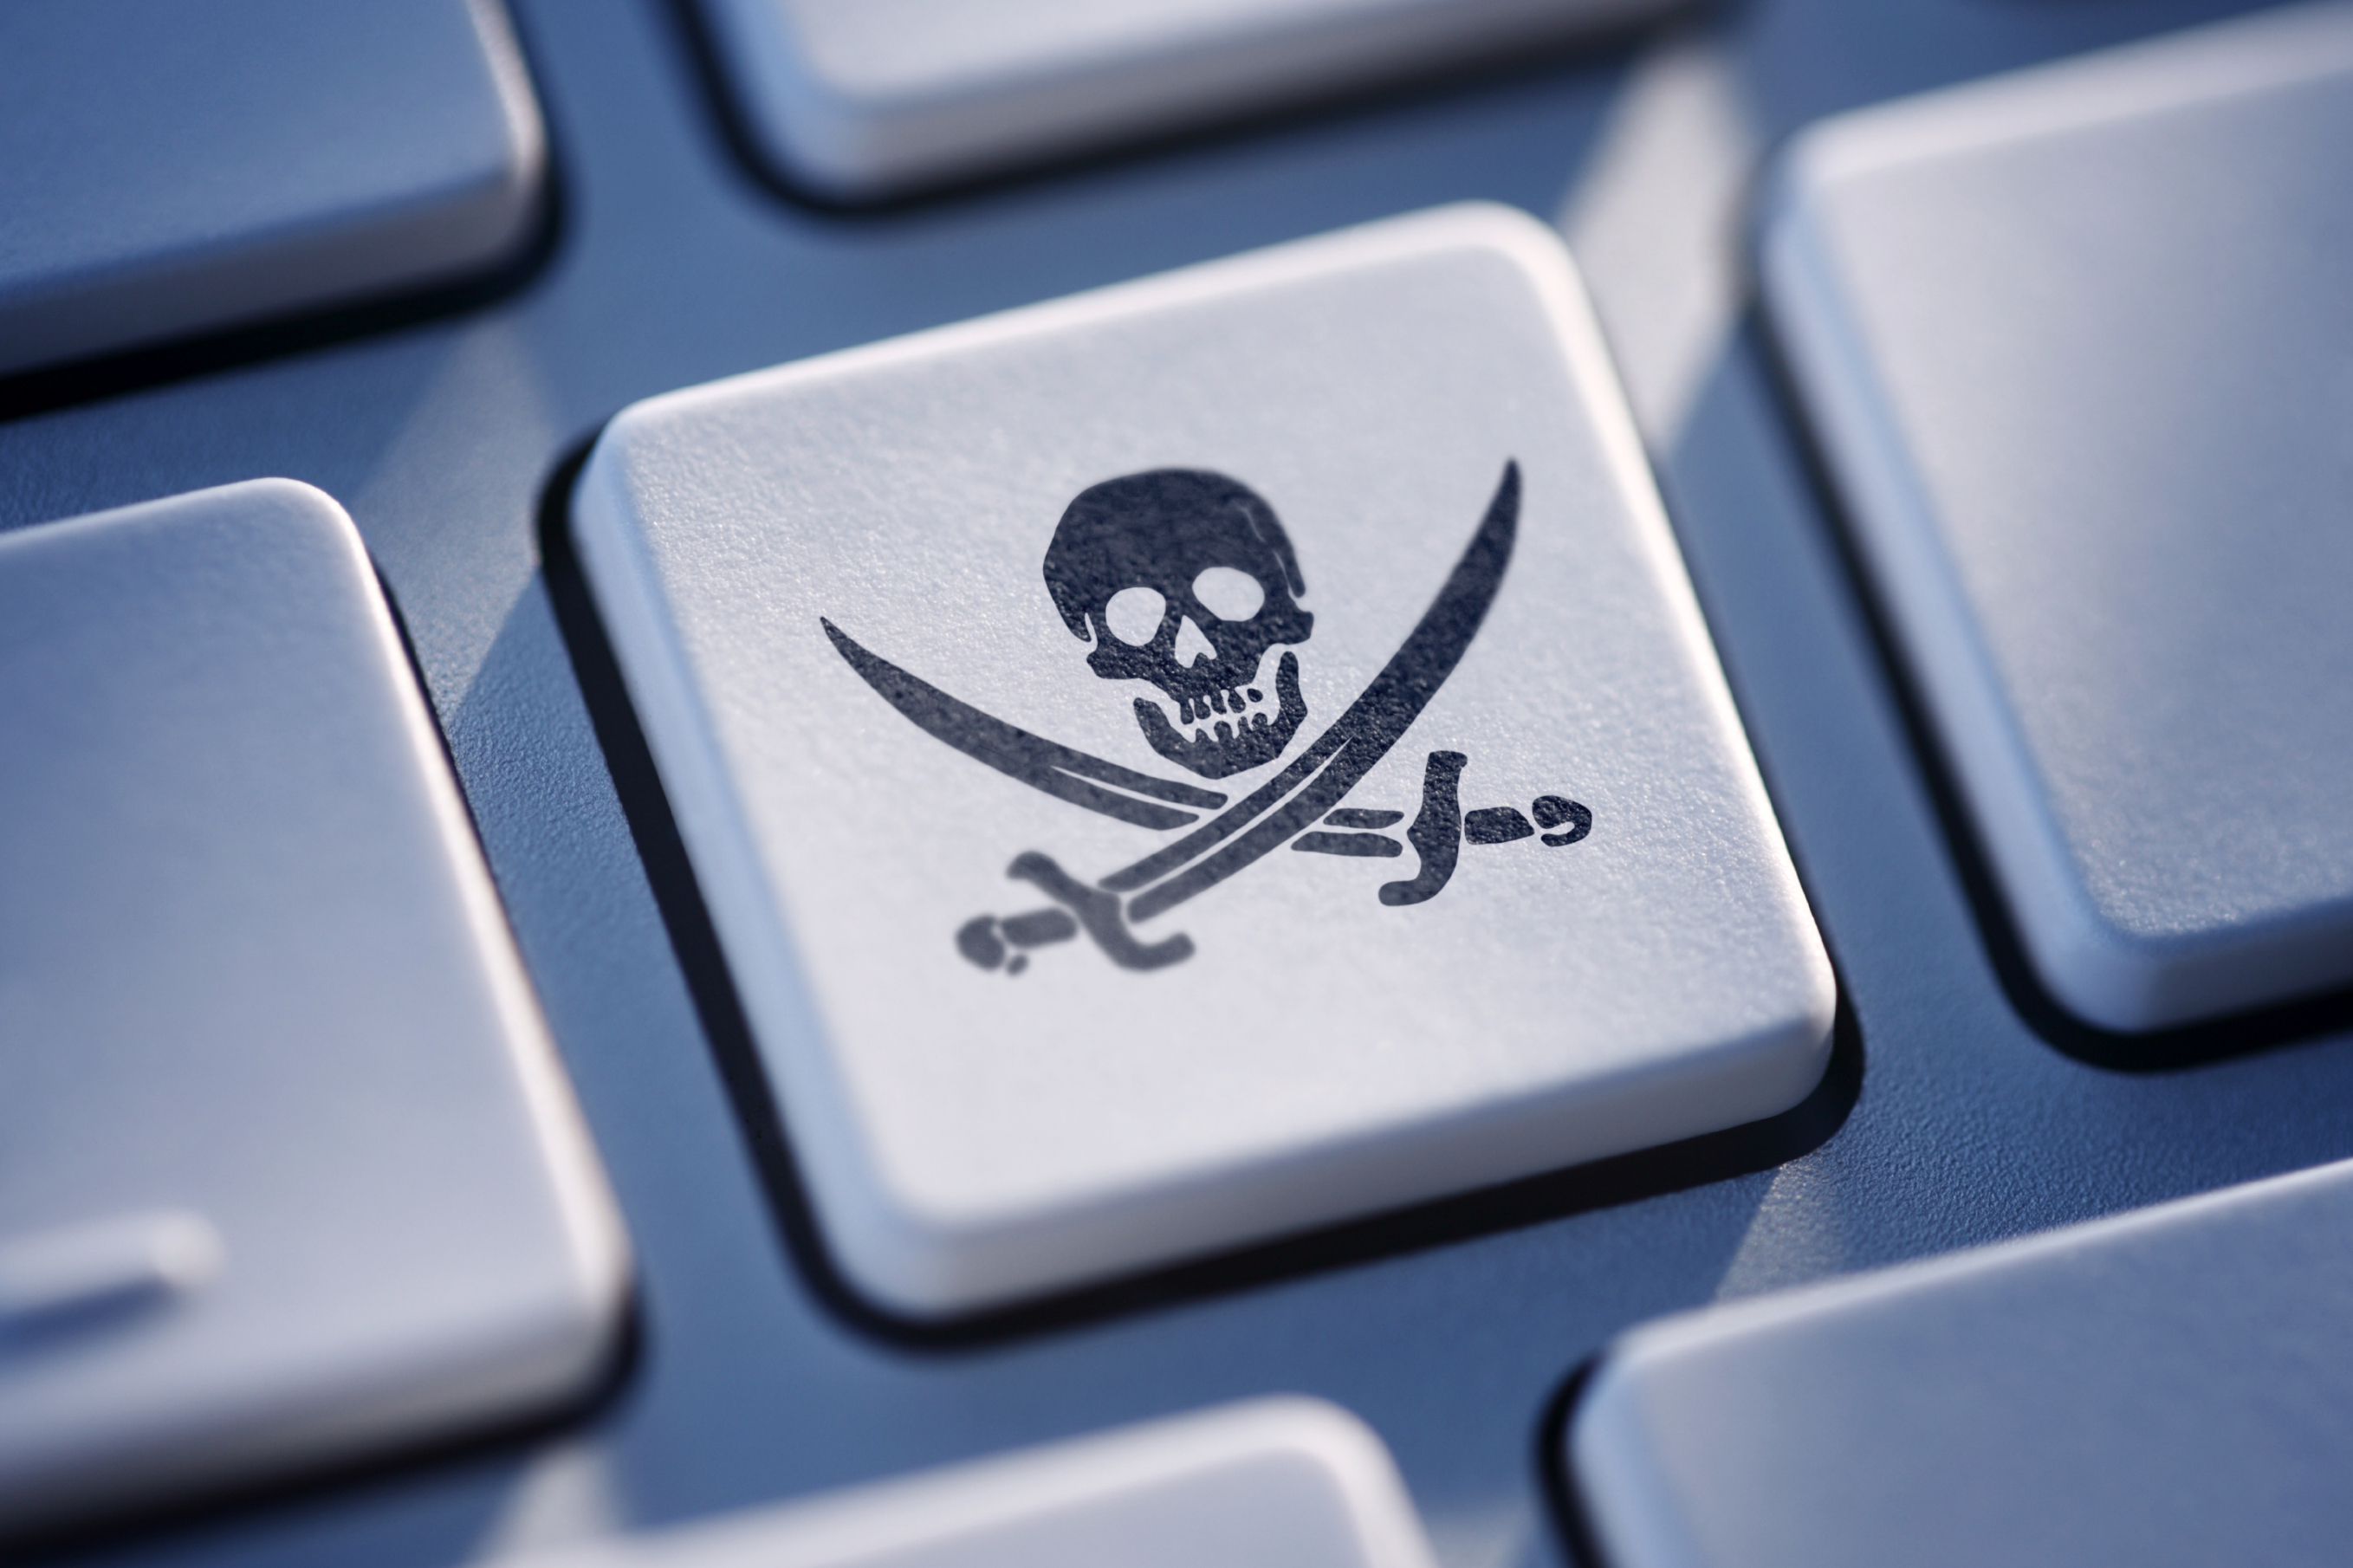 016 Istock 000020208970 Large Pirate Website For Researchs Amazing Research Papers Full